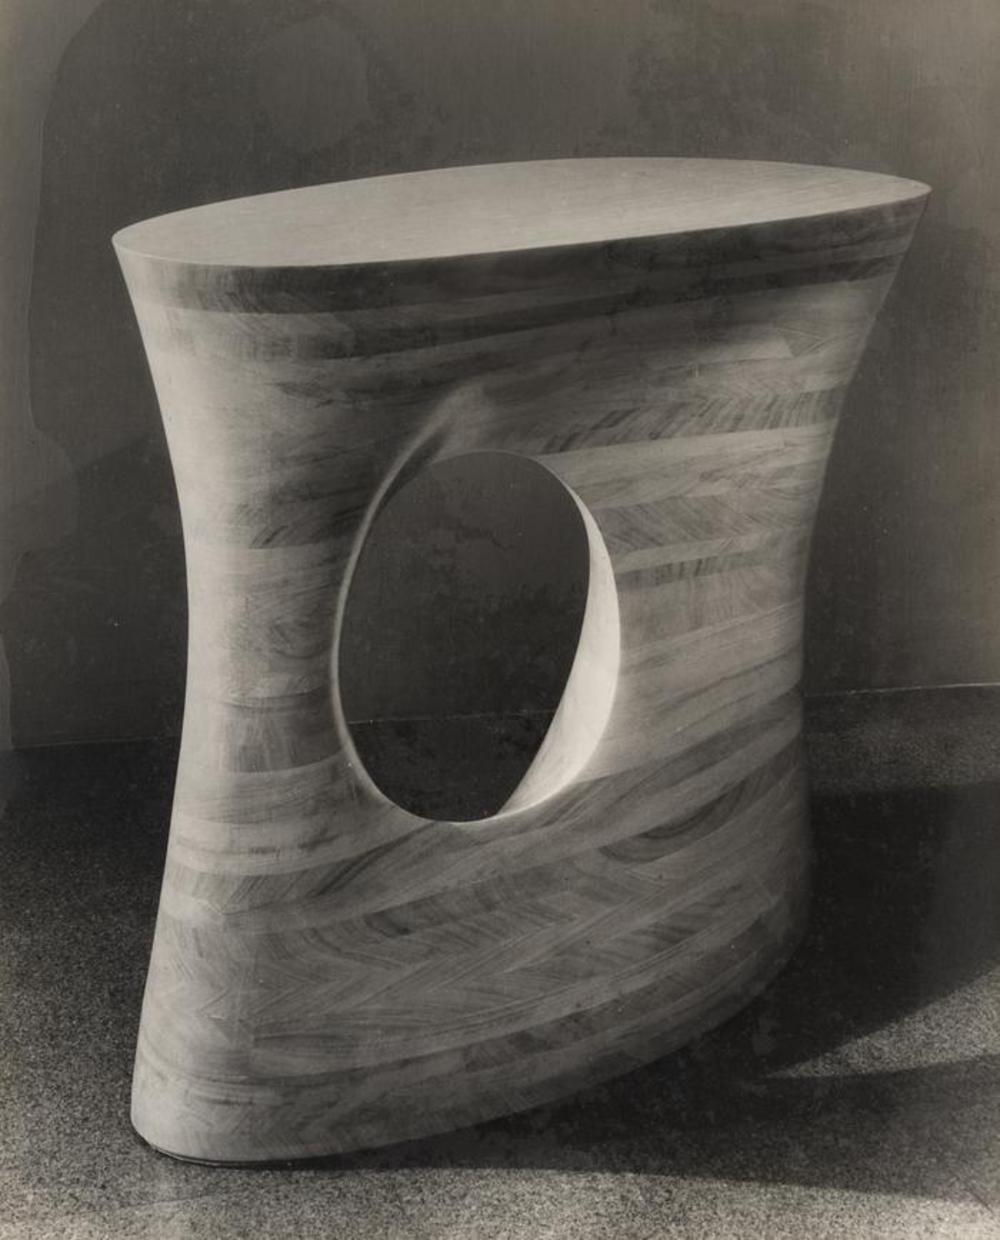 Table for Philip Goodwin, image 2